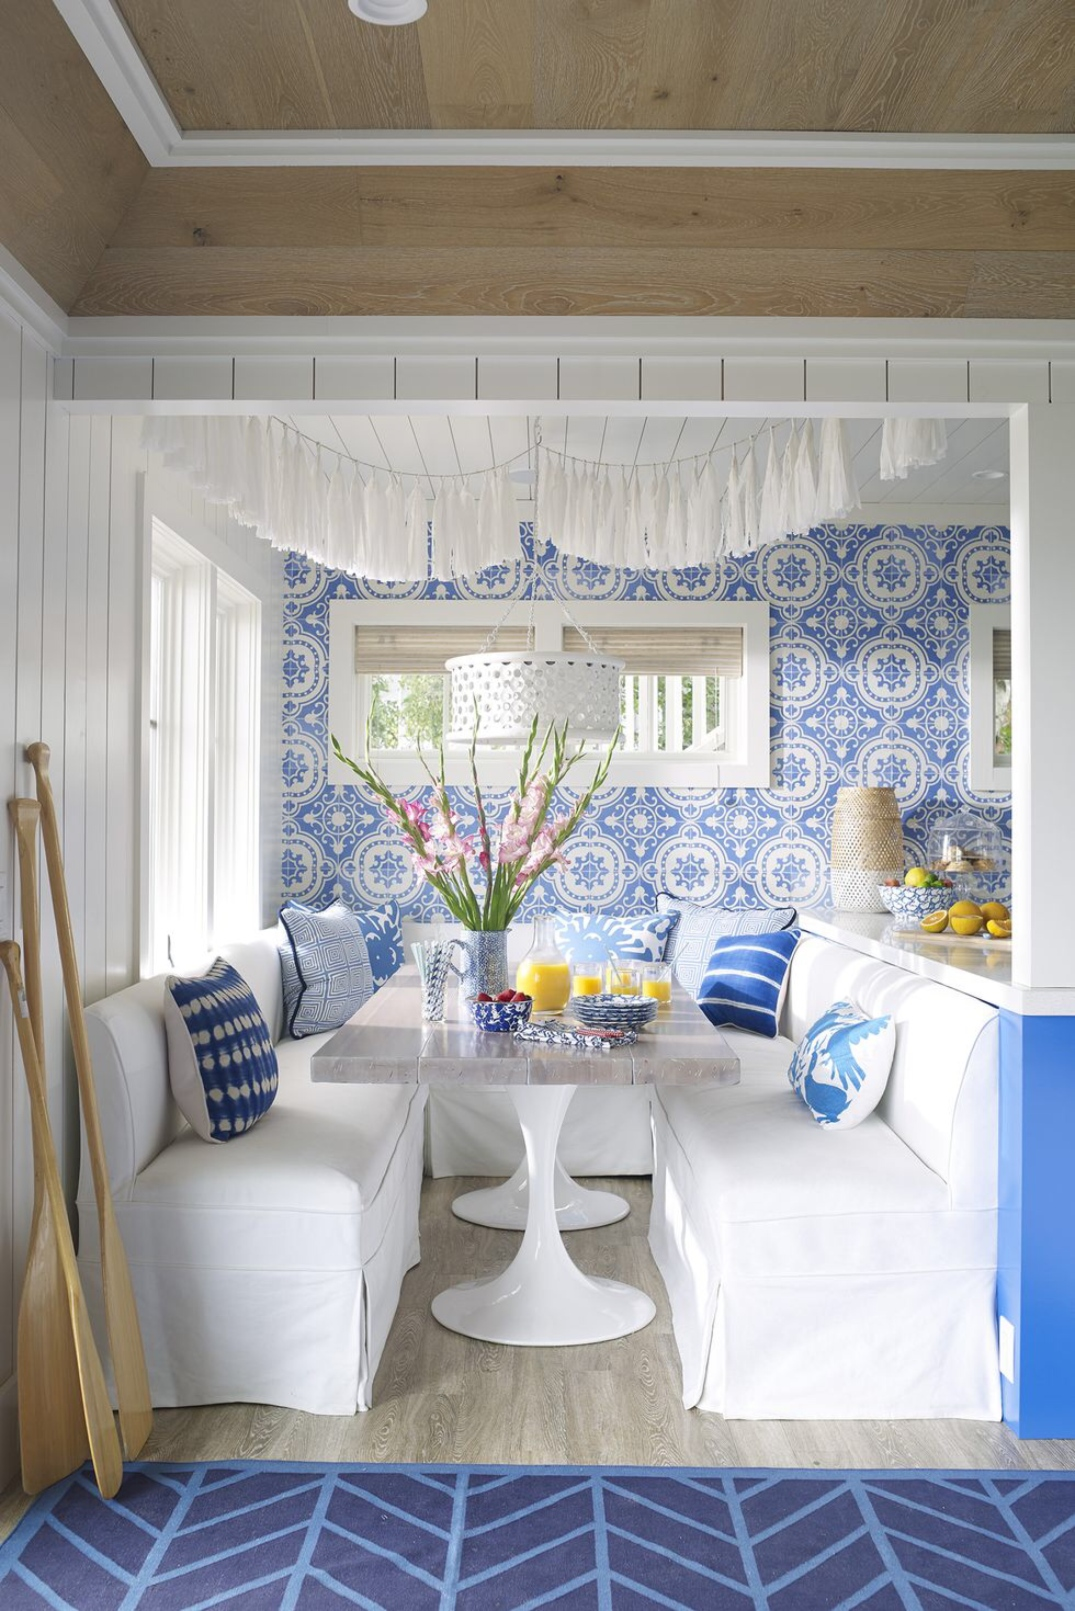 breakfast_room_table_bench_Article_from_House_Beautiful_summer_home_in_Ludington_Michigan_decor_decoration_blue_white_beach_decor_interiors_and_more_vacations.jpg